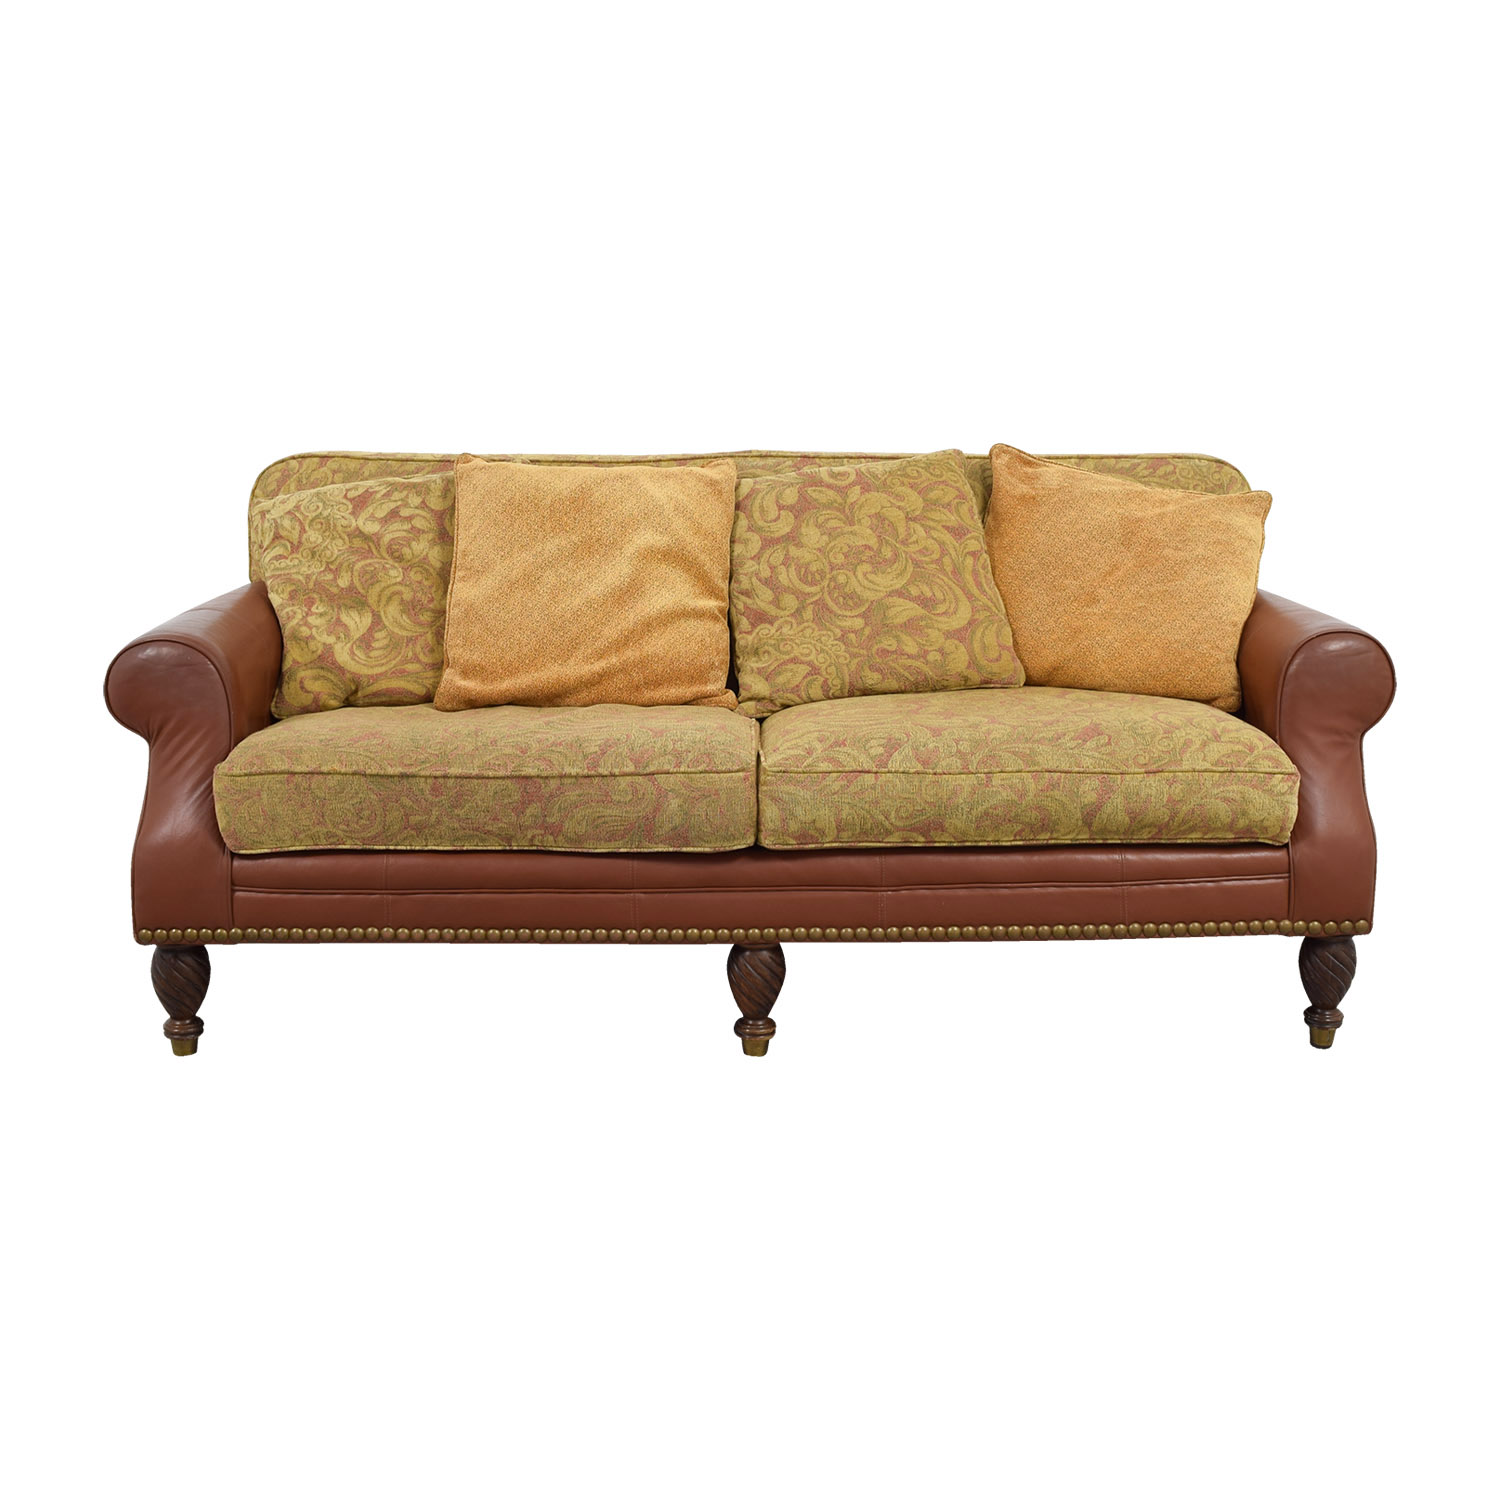 shop Huffman Koos Leather and Jacquard Sofa Huffman Koos